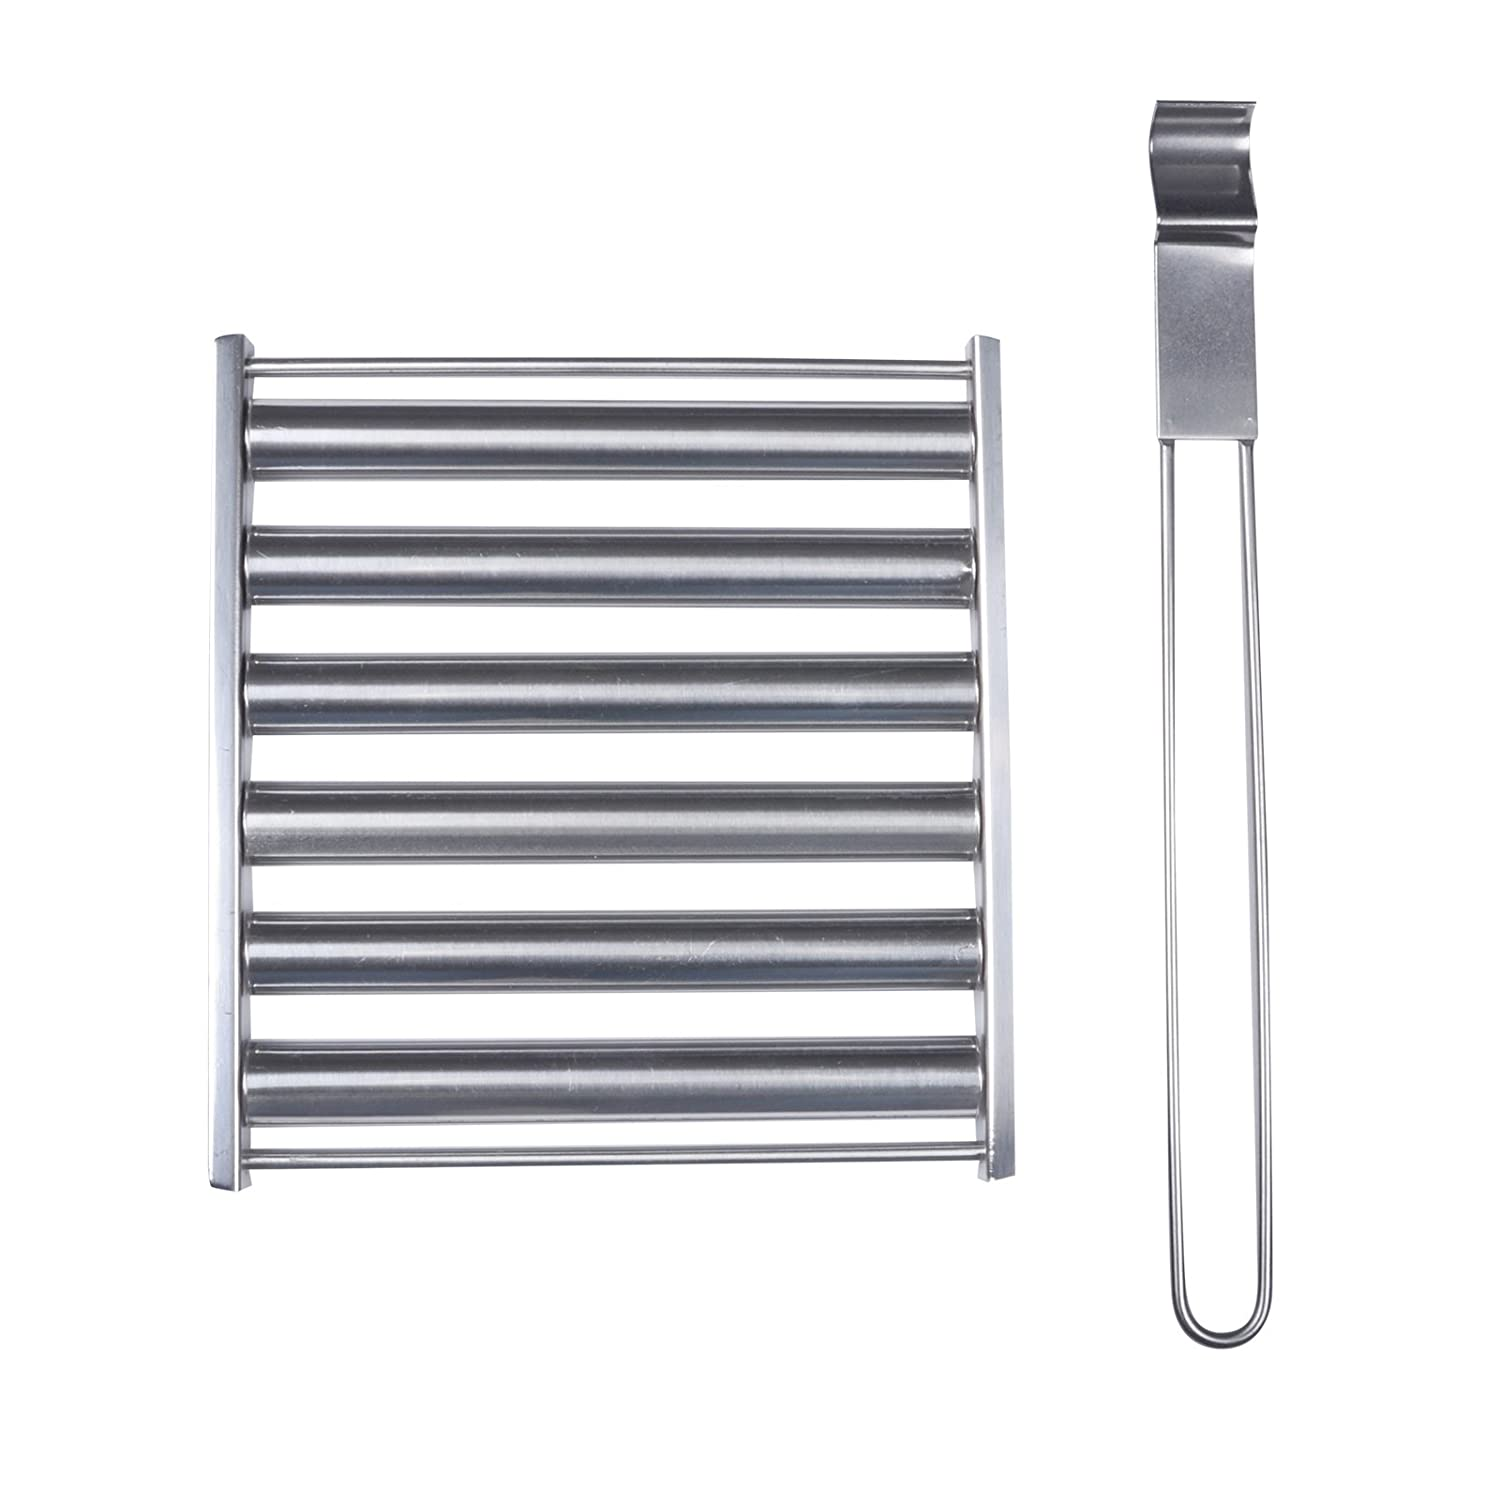 Azuma Barbecue Sausage Roller Turner Stainless Steel Tool Accessory Grill BBQ XS-Stock.com Ltd